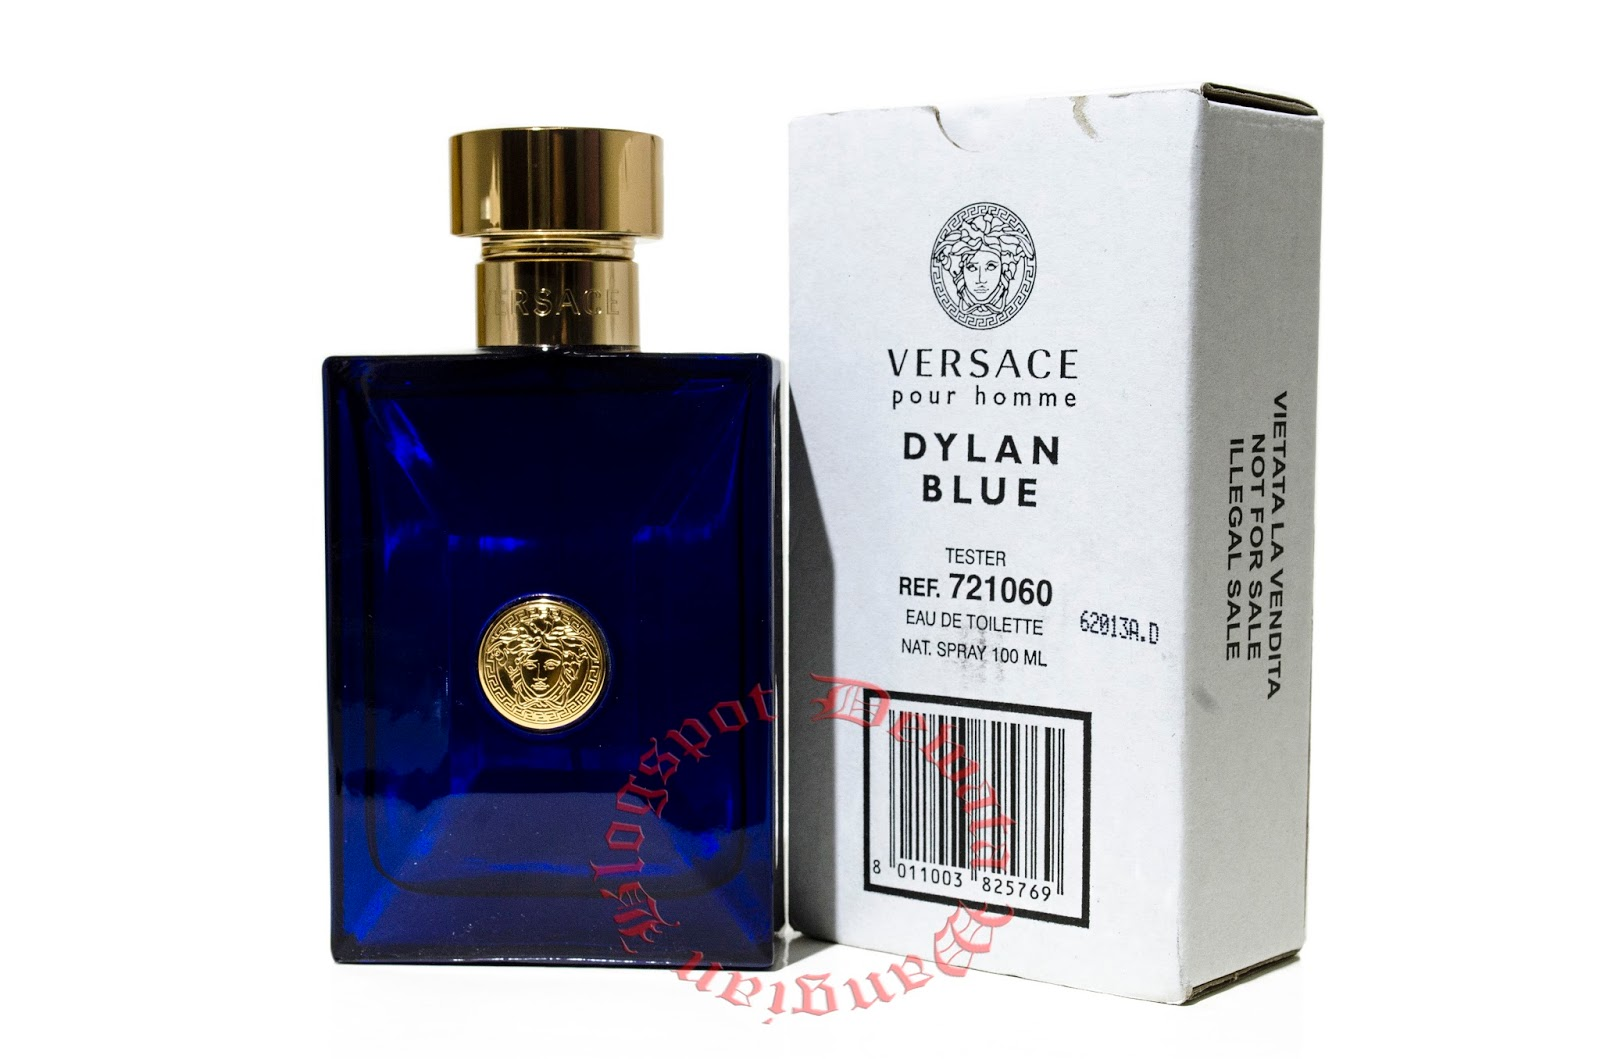 842c6e74bf8 VERSACE Pour Homme Dylan Blue Tester Perfume